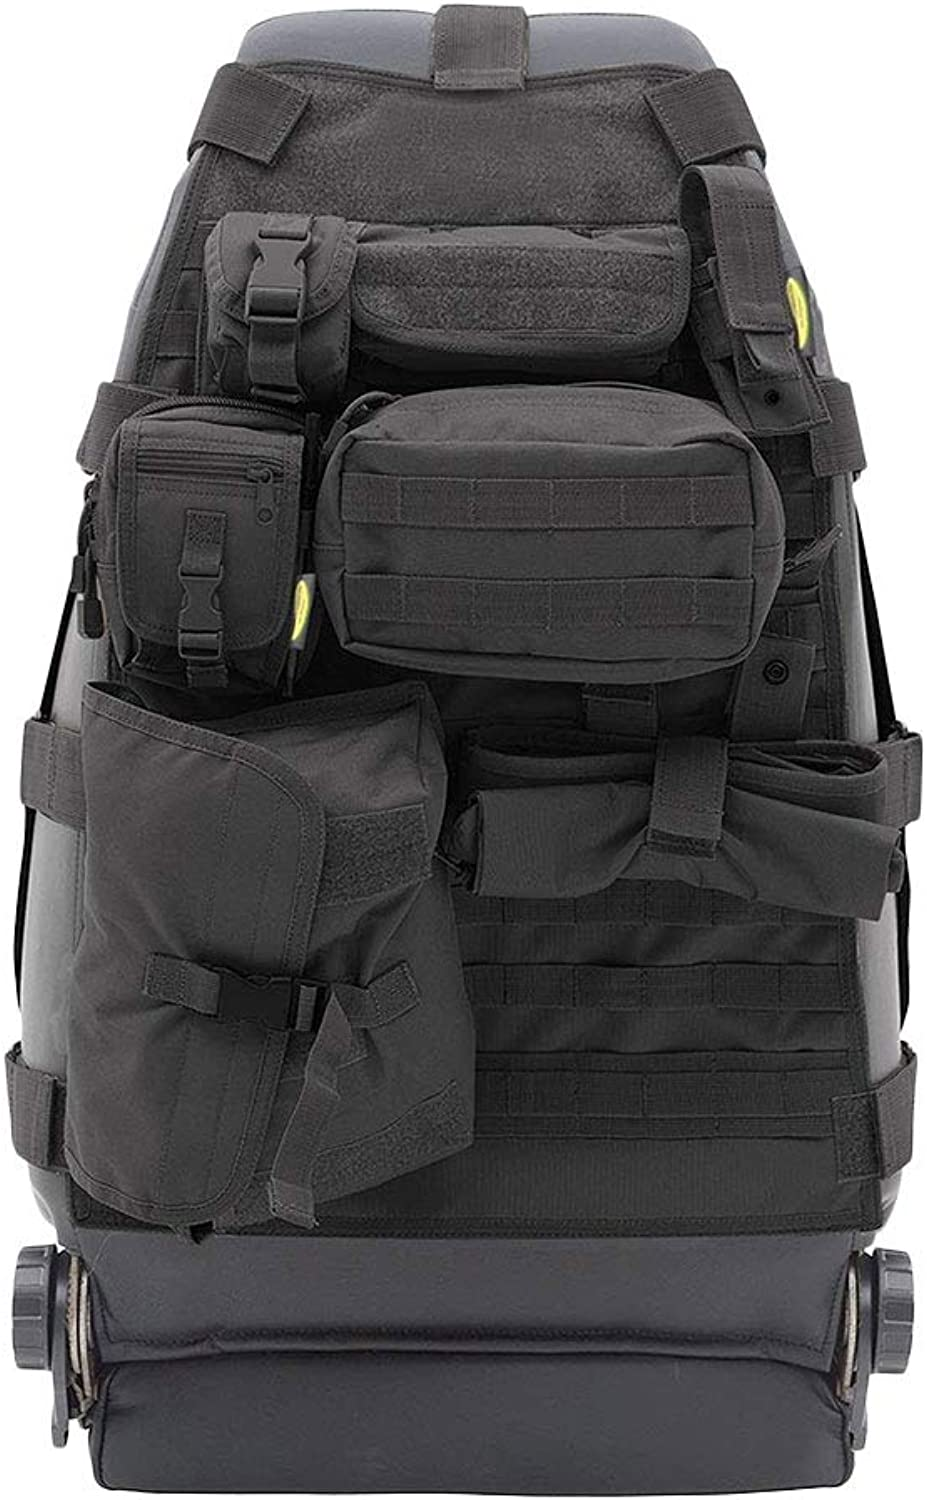 Offroad Vehicle Seatback Cover Storage Bag Dust-Proof 7 Nylon Pockets Wear-Resistant Simple Black MOLLE System Removable Design